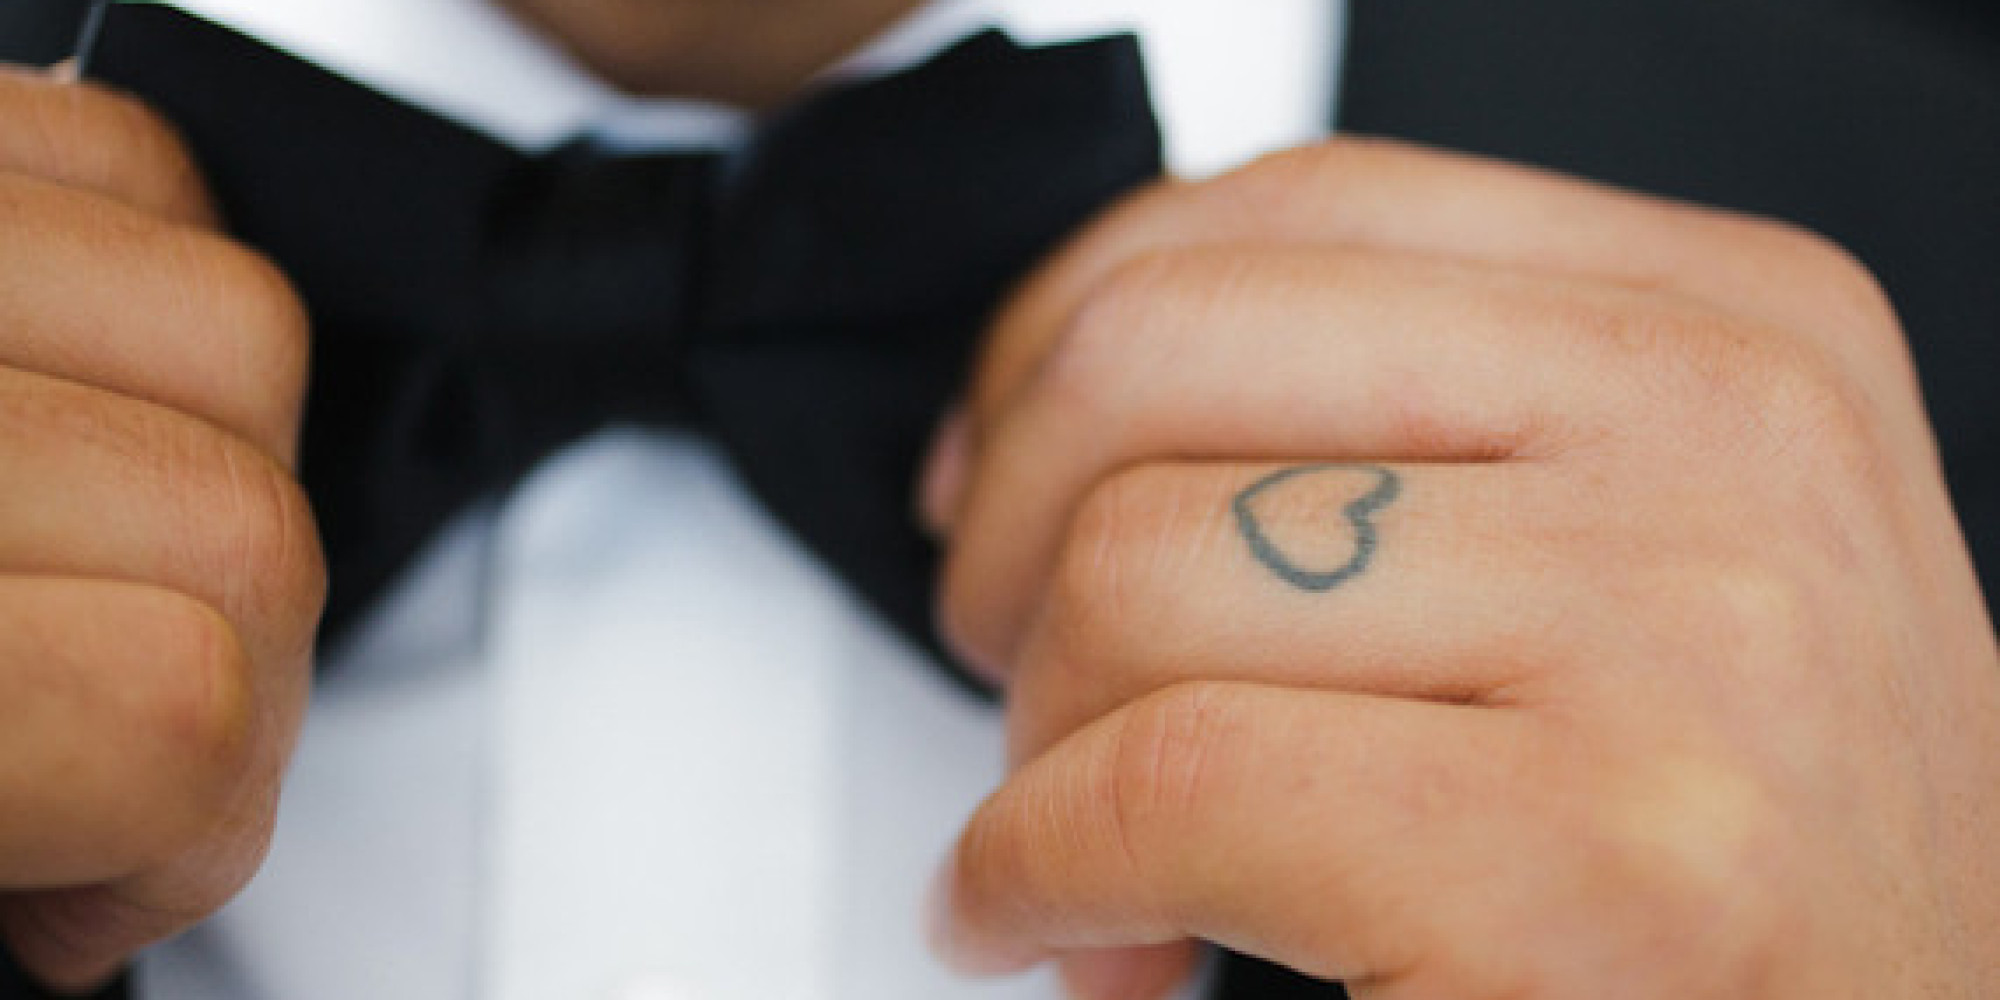 8 Tattoo Wedding Ring Ideas That Show Yourmitment For, Like, Ever   Huffpost